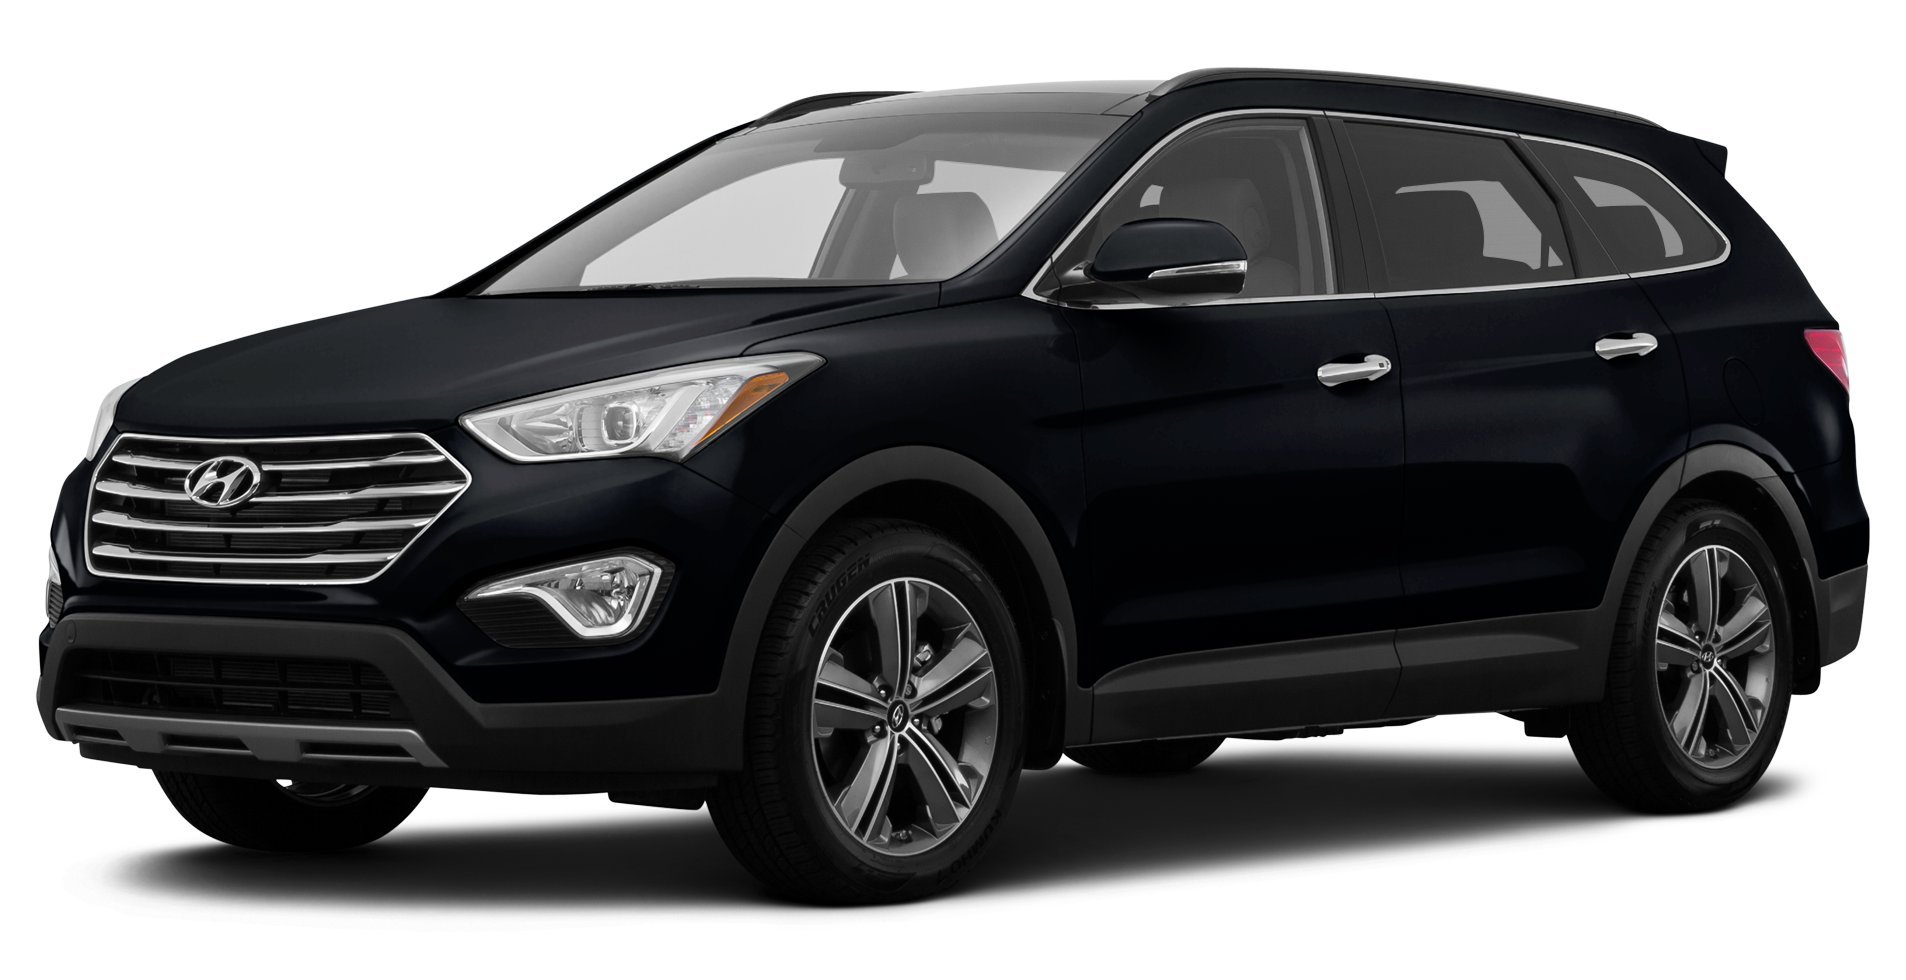 2016 Hyundai Santa Fe >> Amazon Com 2016 Hyundai Santa Fe Reviews Images And Specs Vehicles